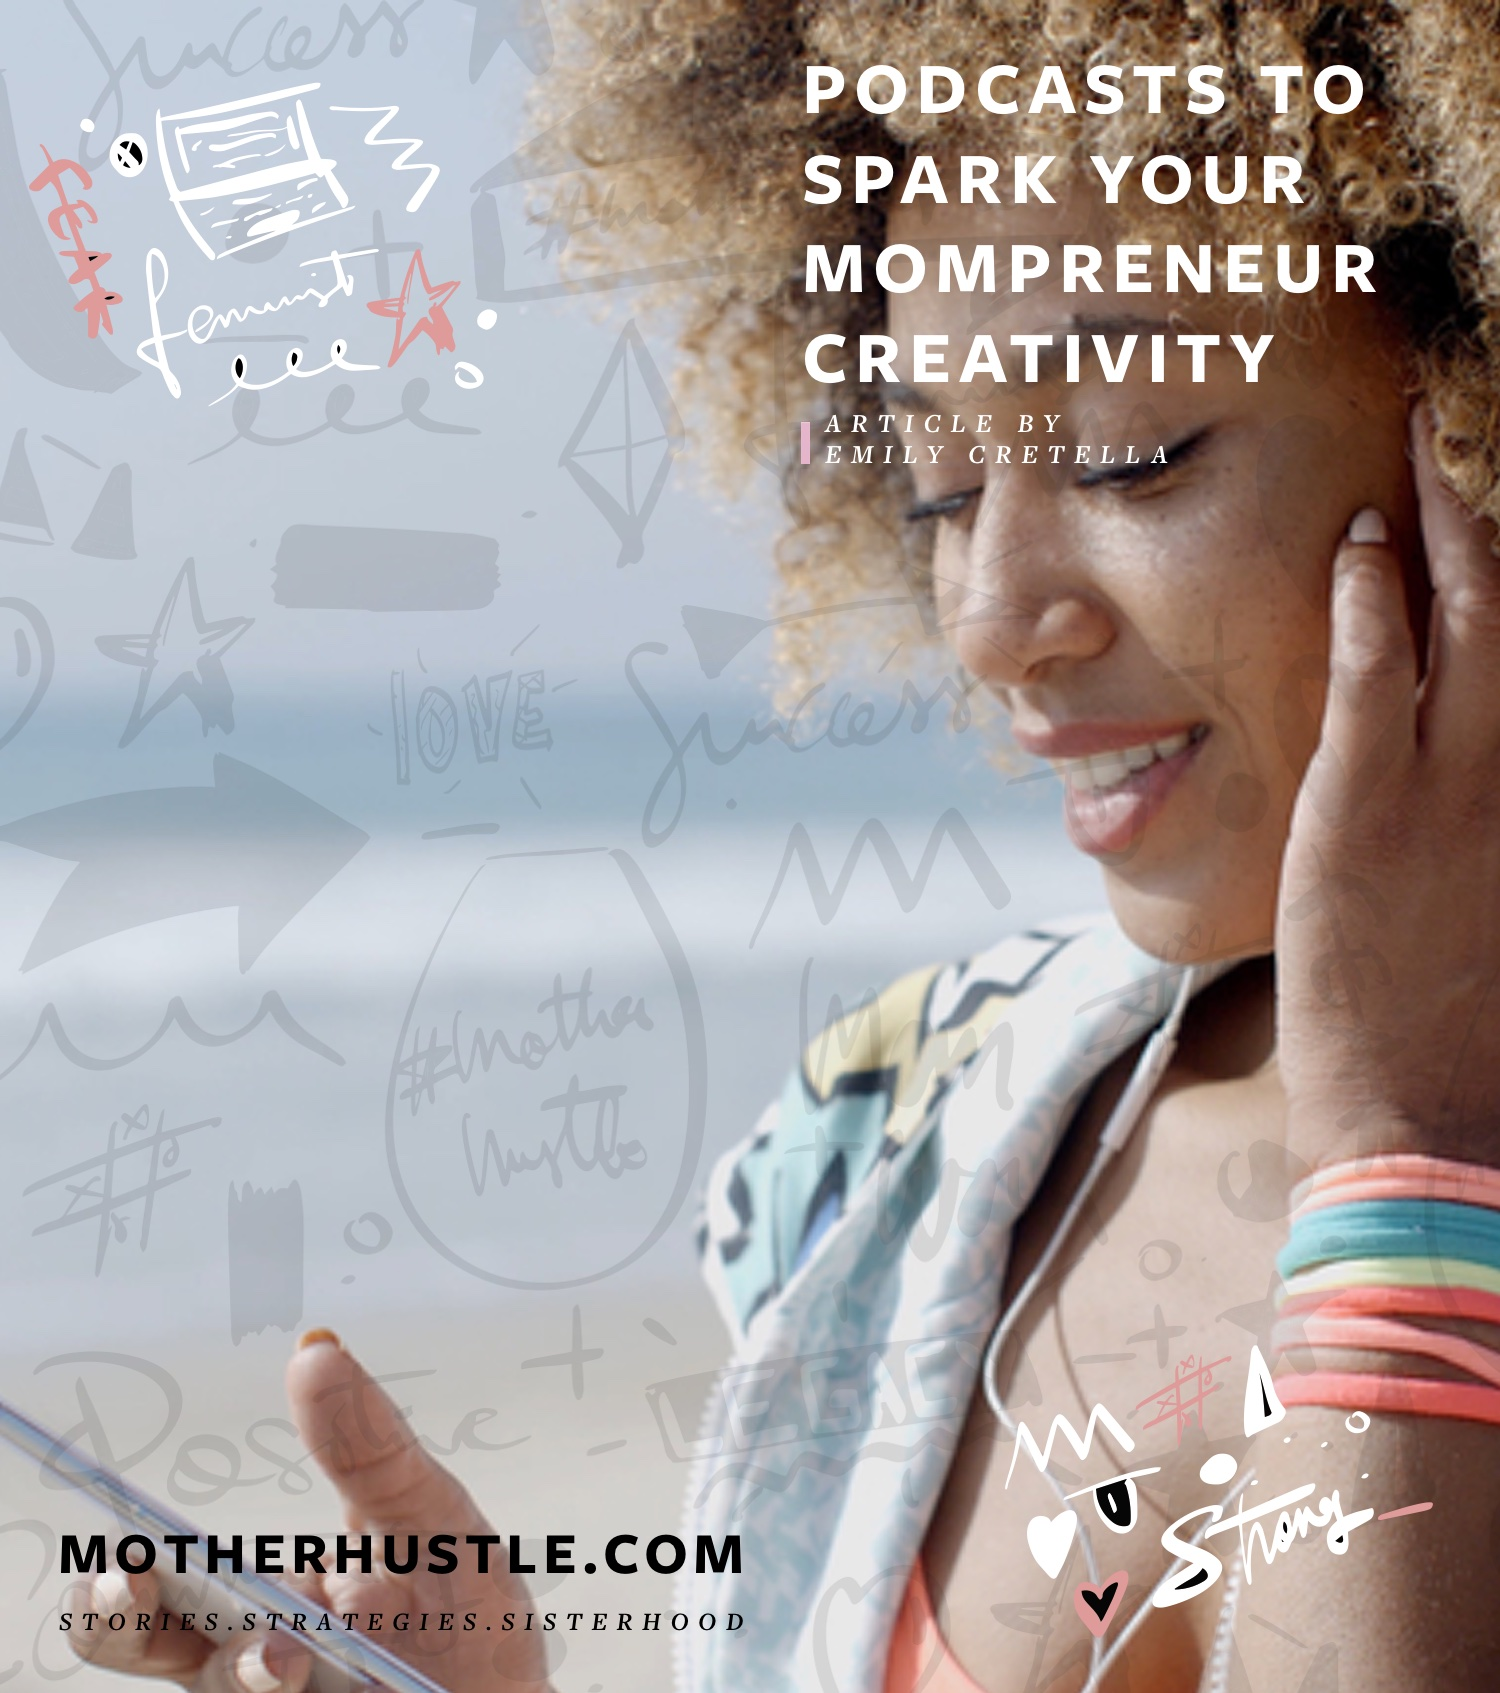 Podcasts to Spark Your Mompreneur Creativity